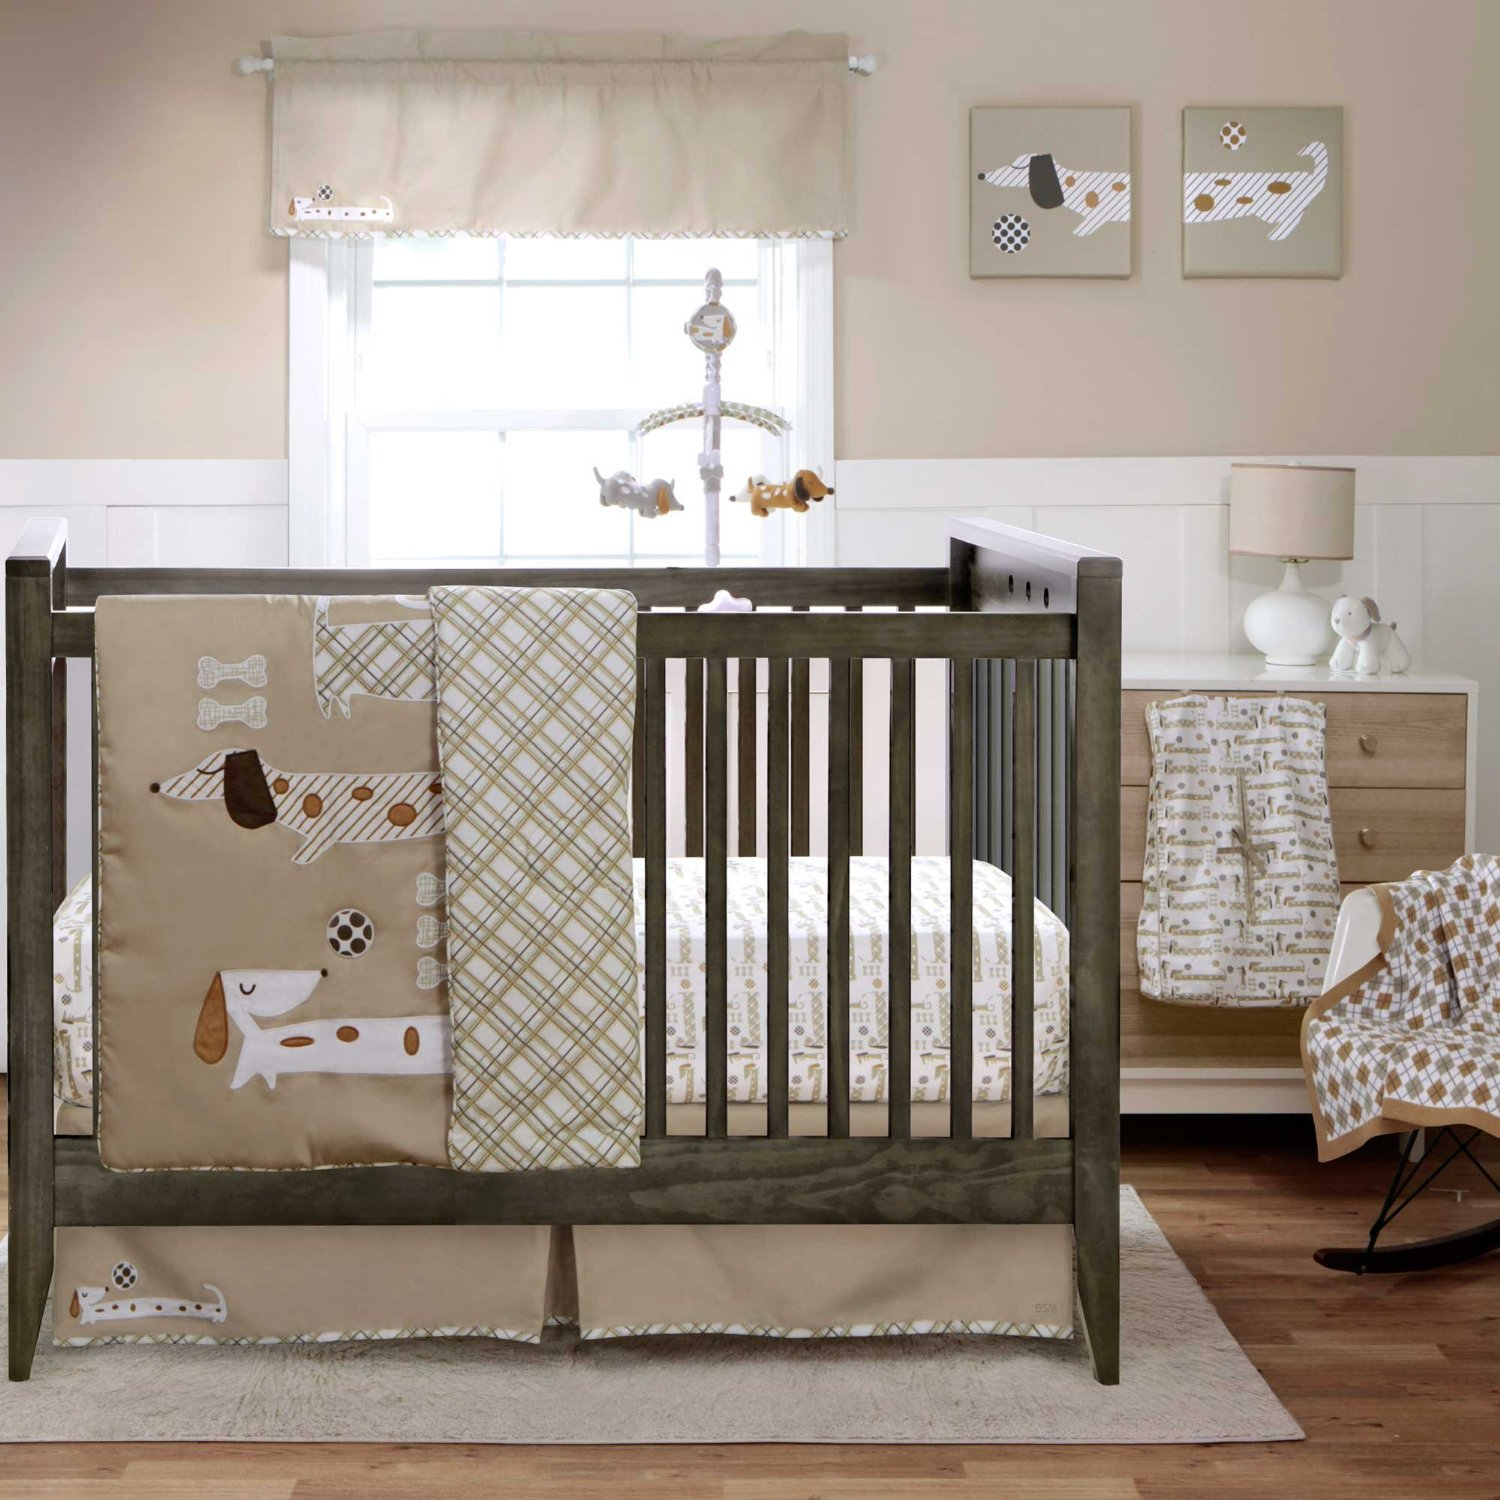 Migi Baby Bedding And Decor